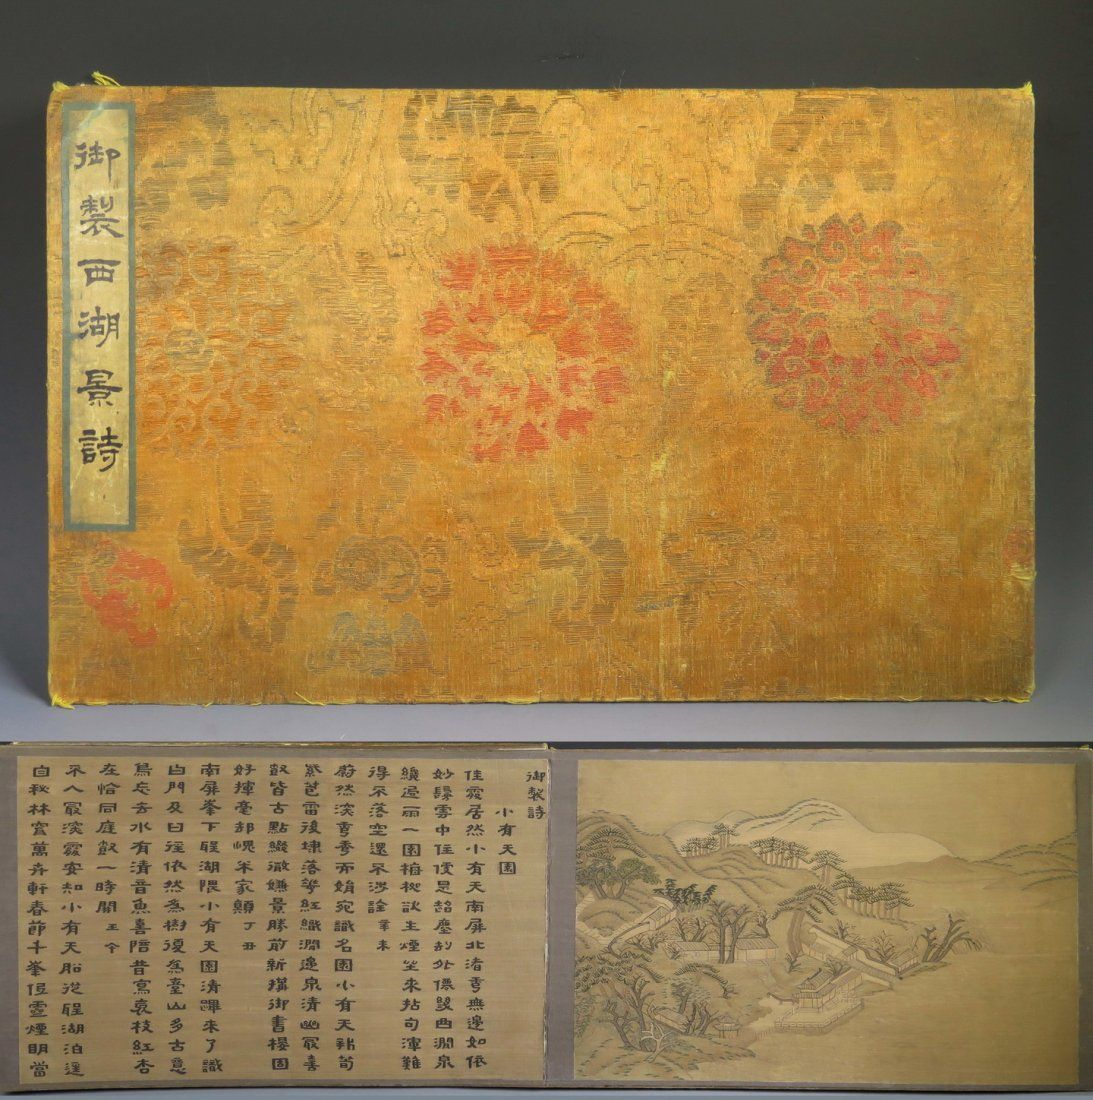 18TH C. IMPERIAL KESI ALBUM OF POEMS ON THE 'WEST LAKE'